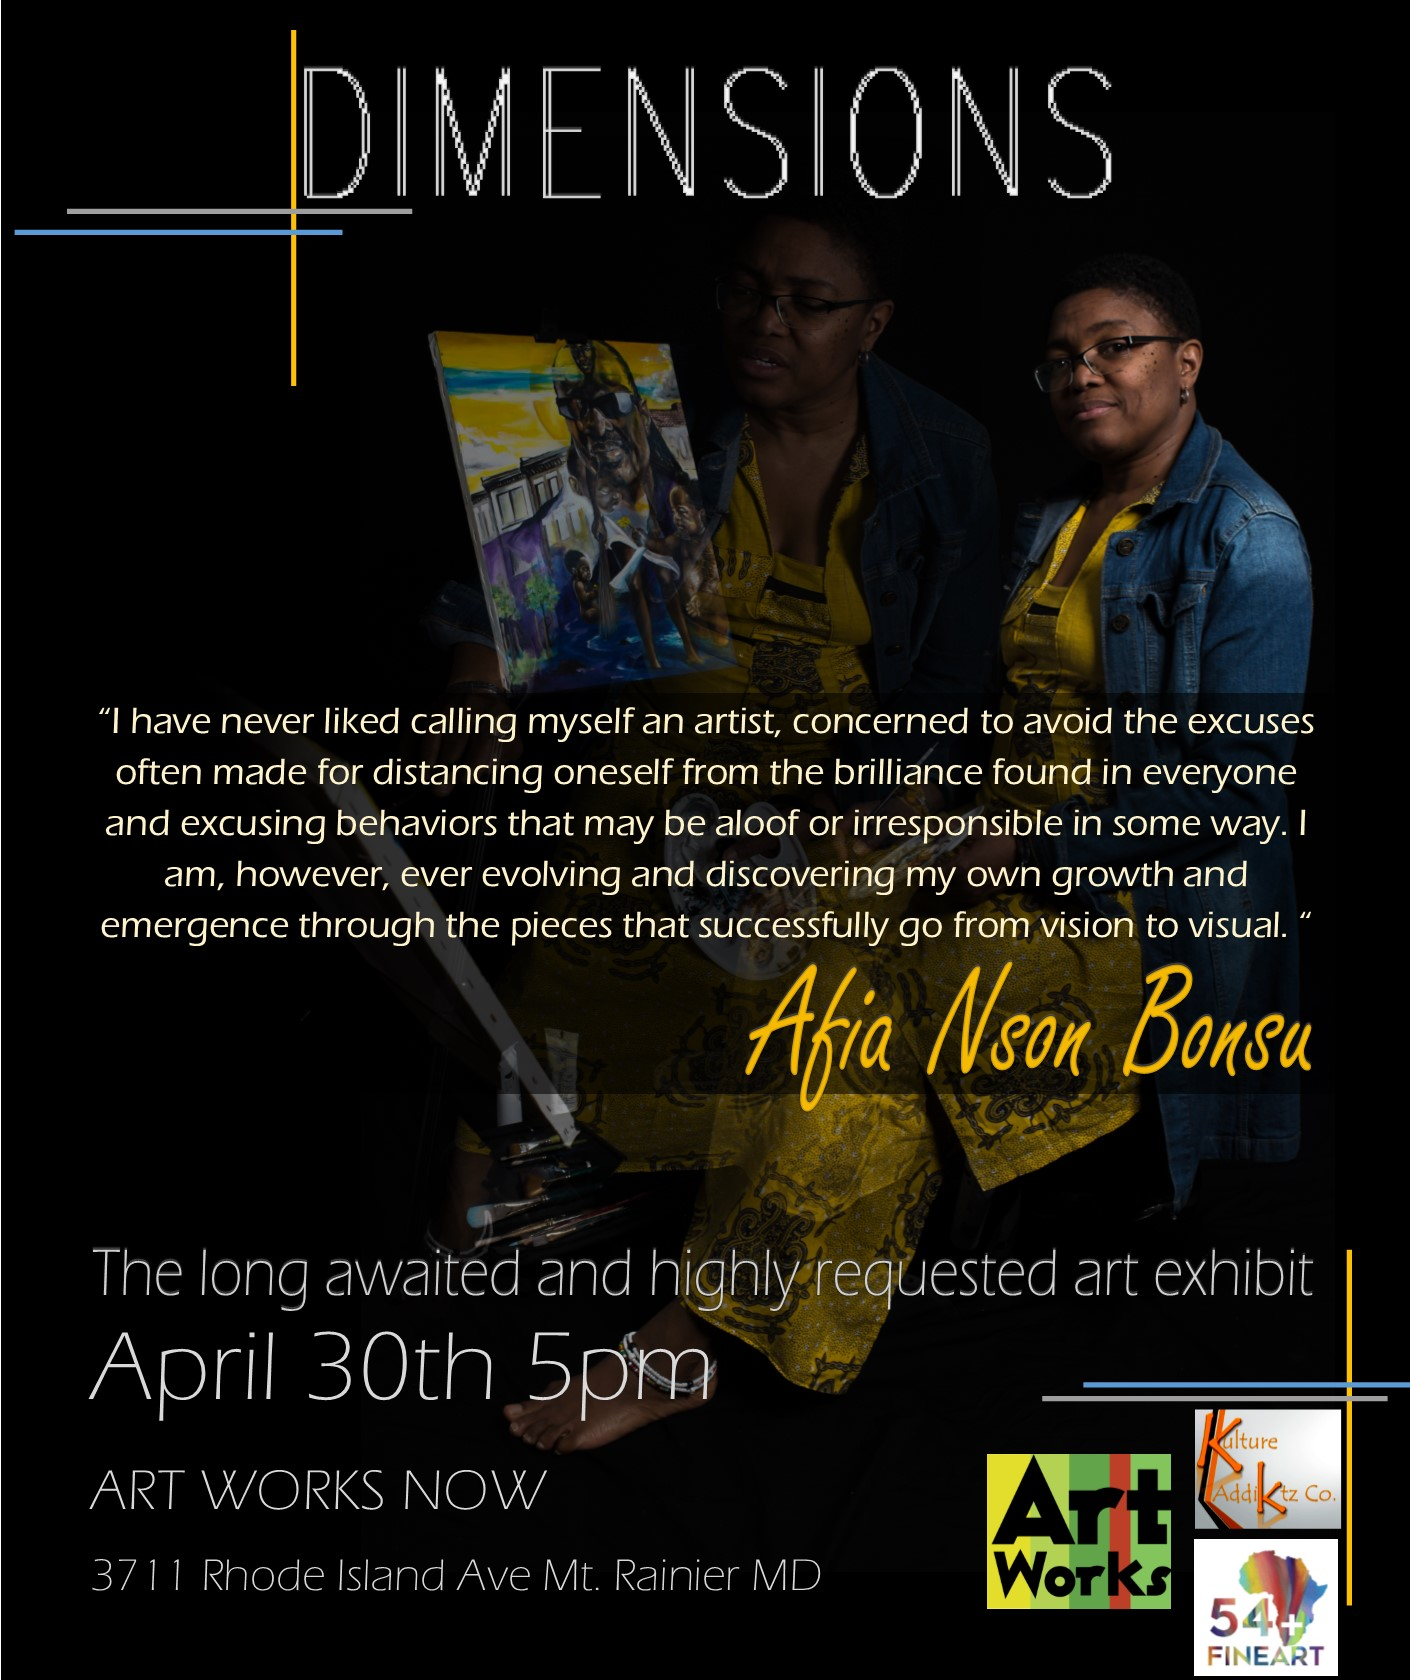 """The Kulture Addiktz Co. and 54+fineart presents the long-awaited solo exhibition entitled """"Dimensions"""" by Afia Bonsu."""